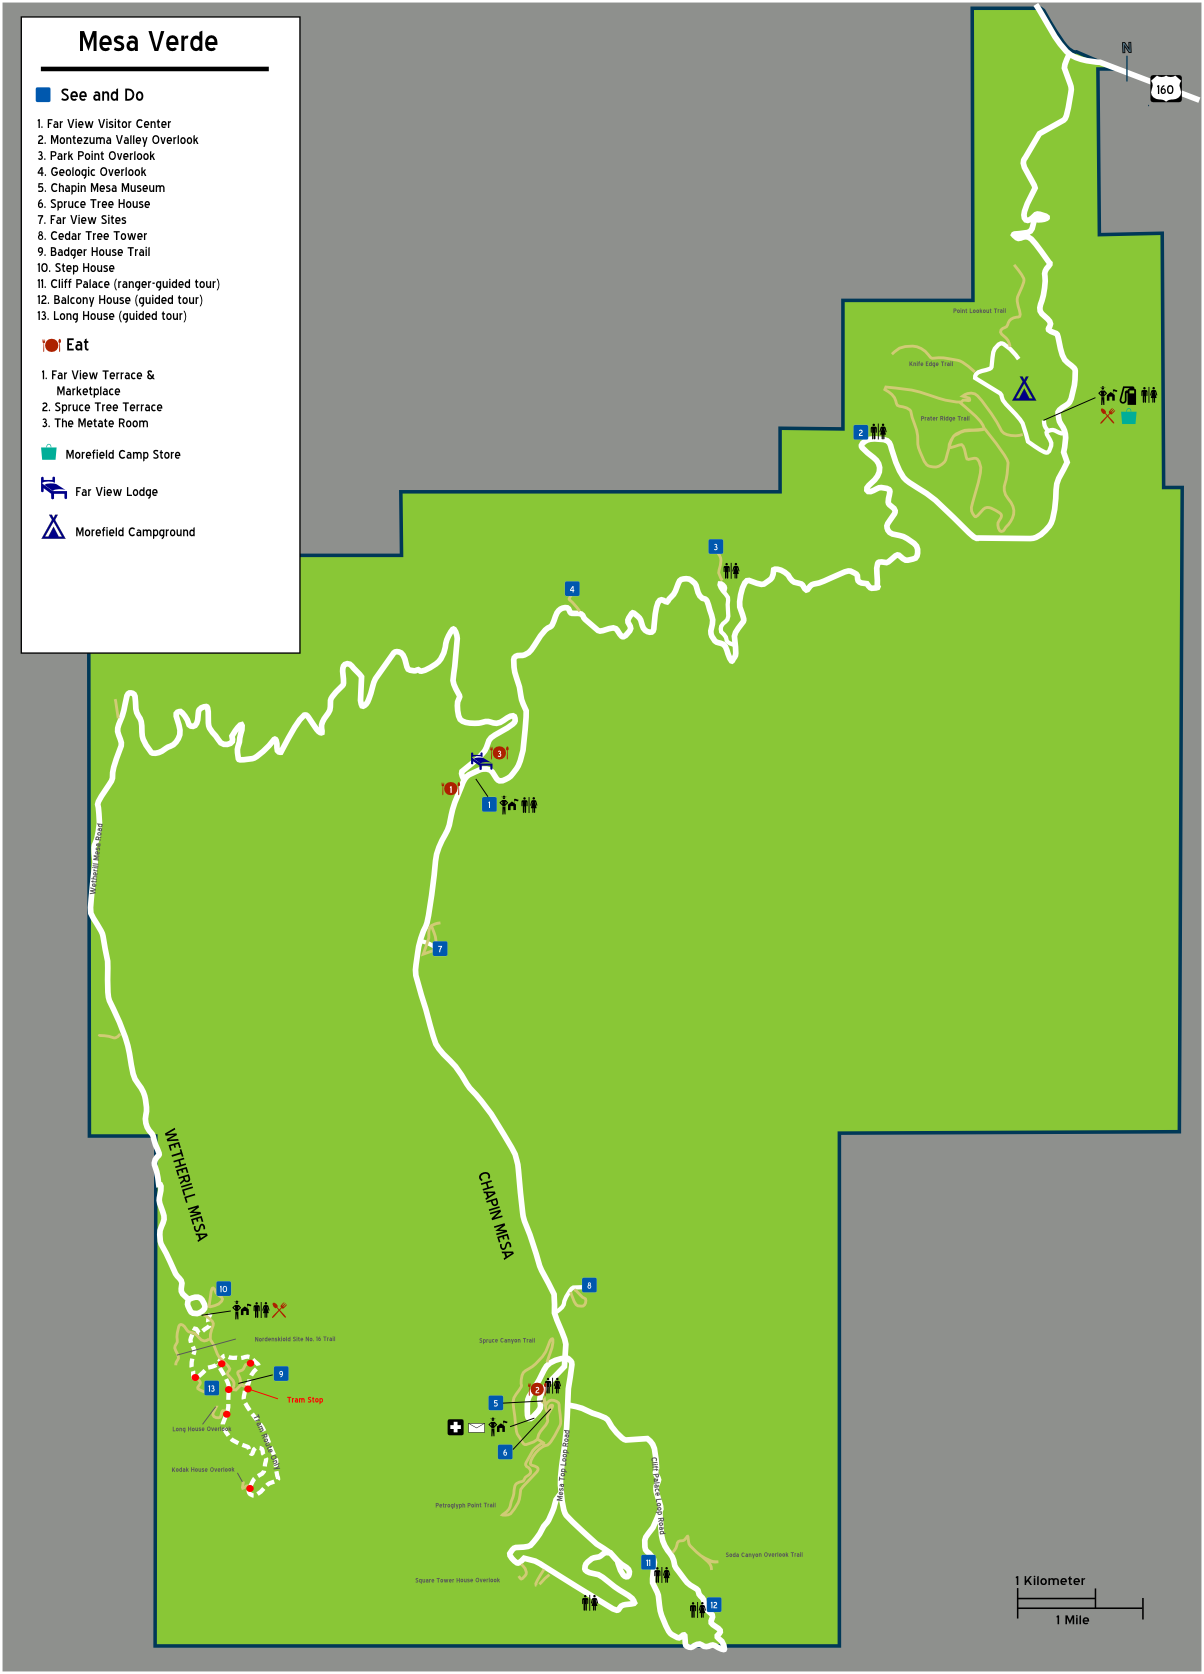 File:Mesa verde map.png - Wikimedia Commons on